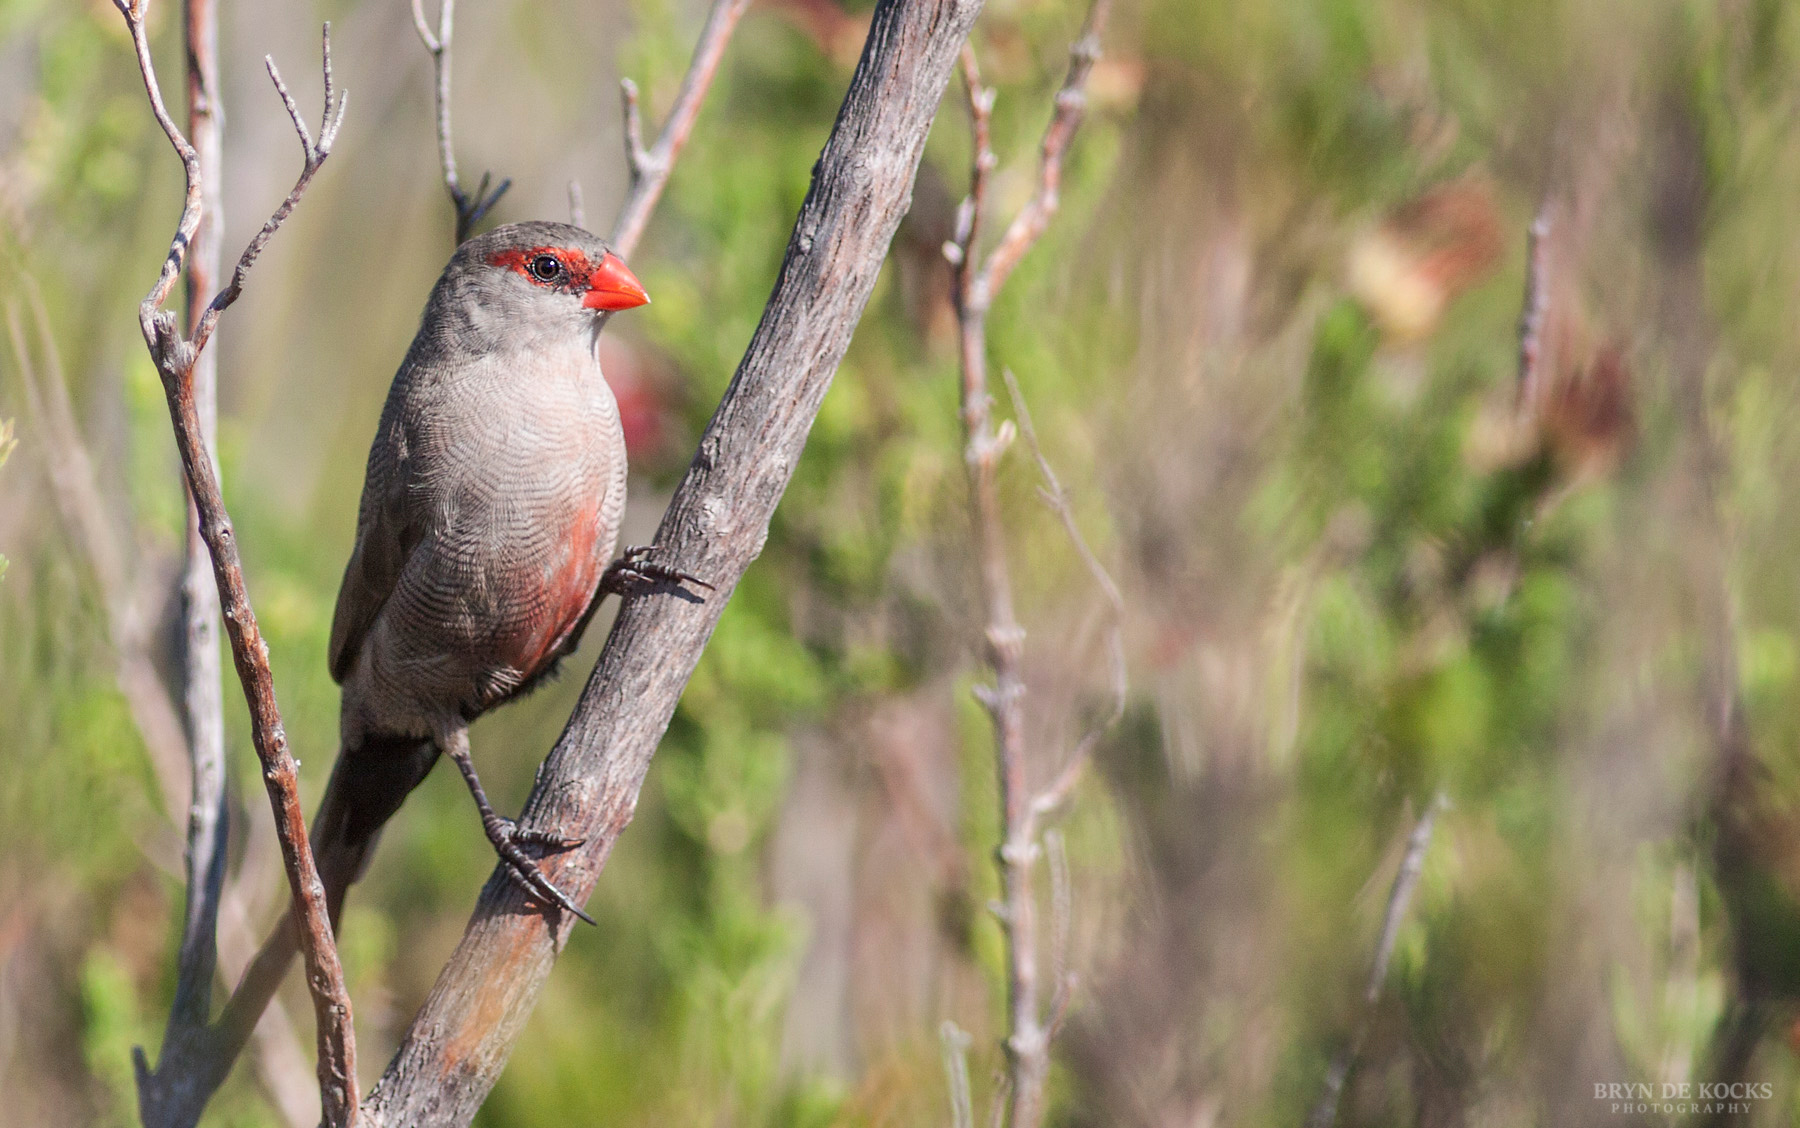 Common Waxbill at Kirstenbosch Gardens